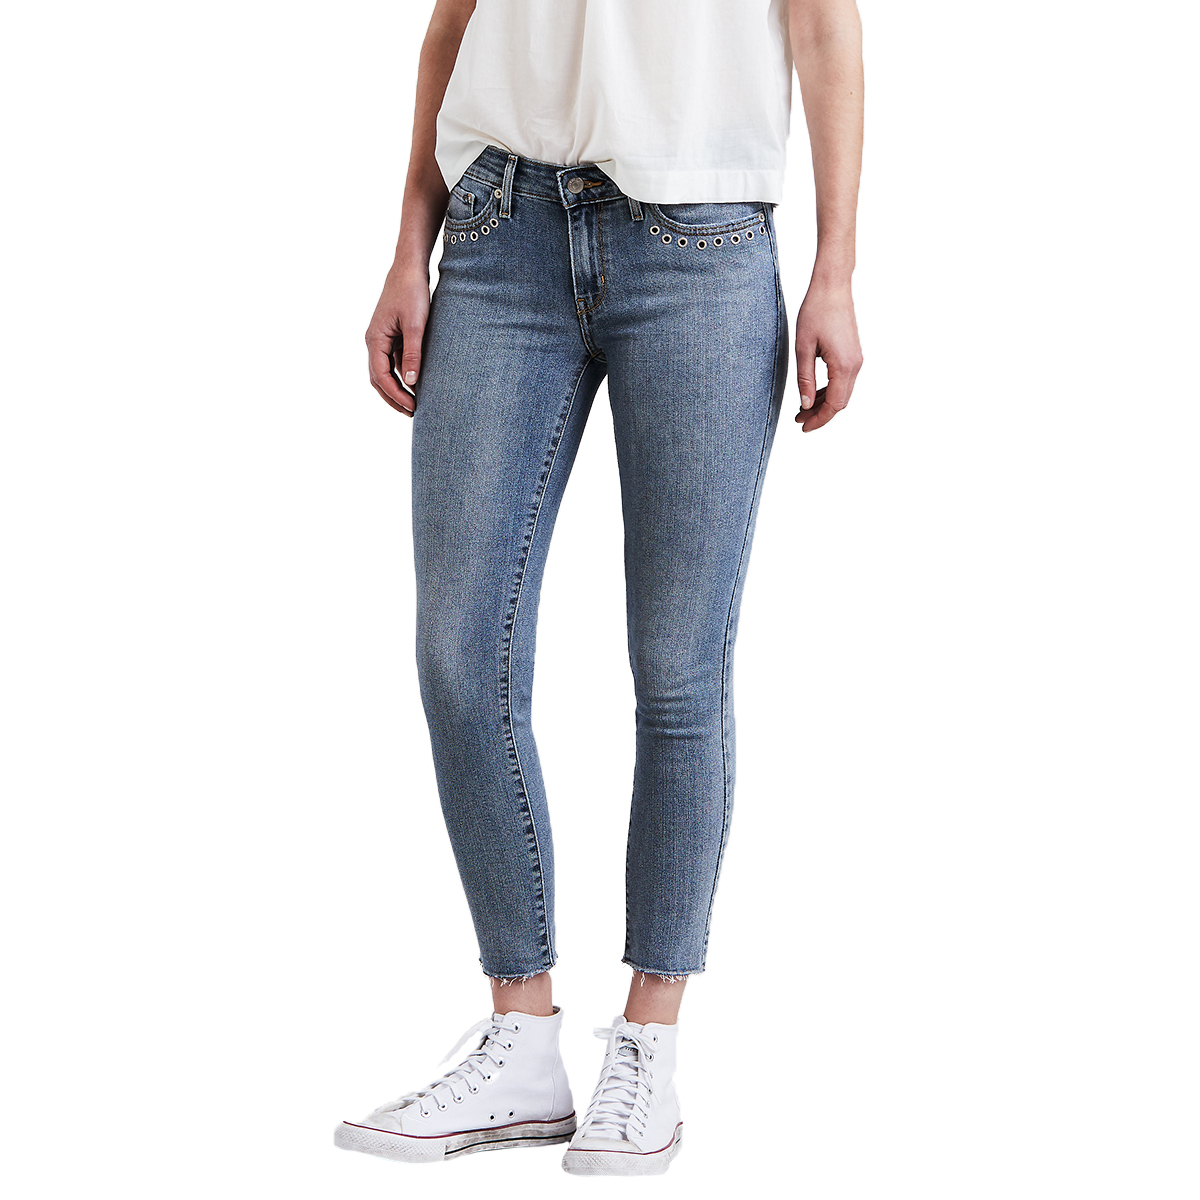 Levi's Women's 711 Skinny Ankle Jeans - White, 29